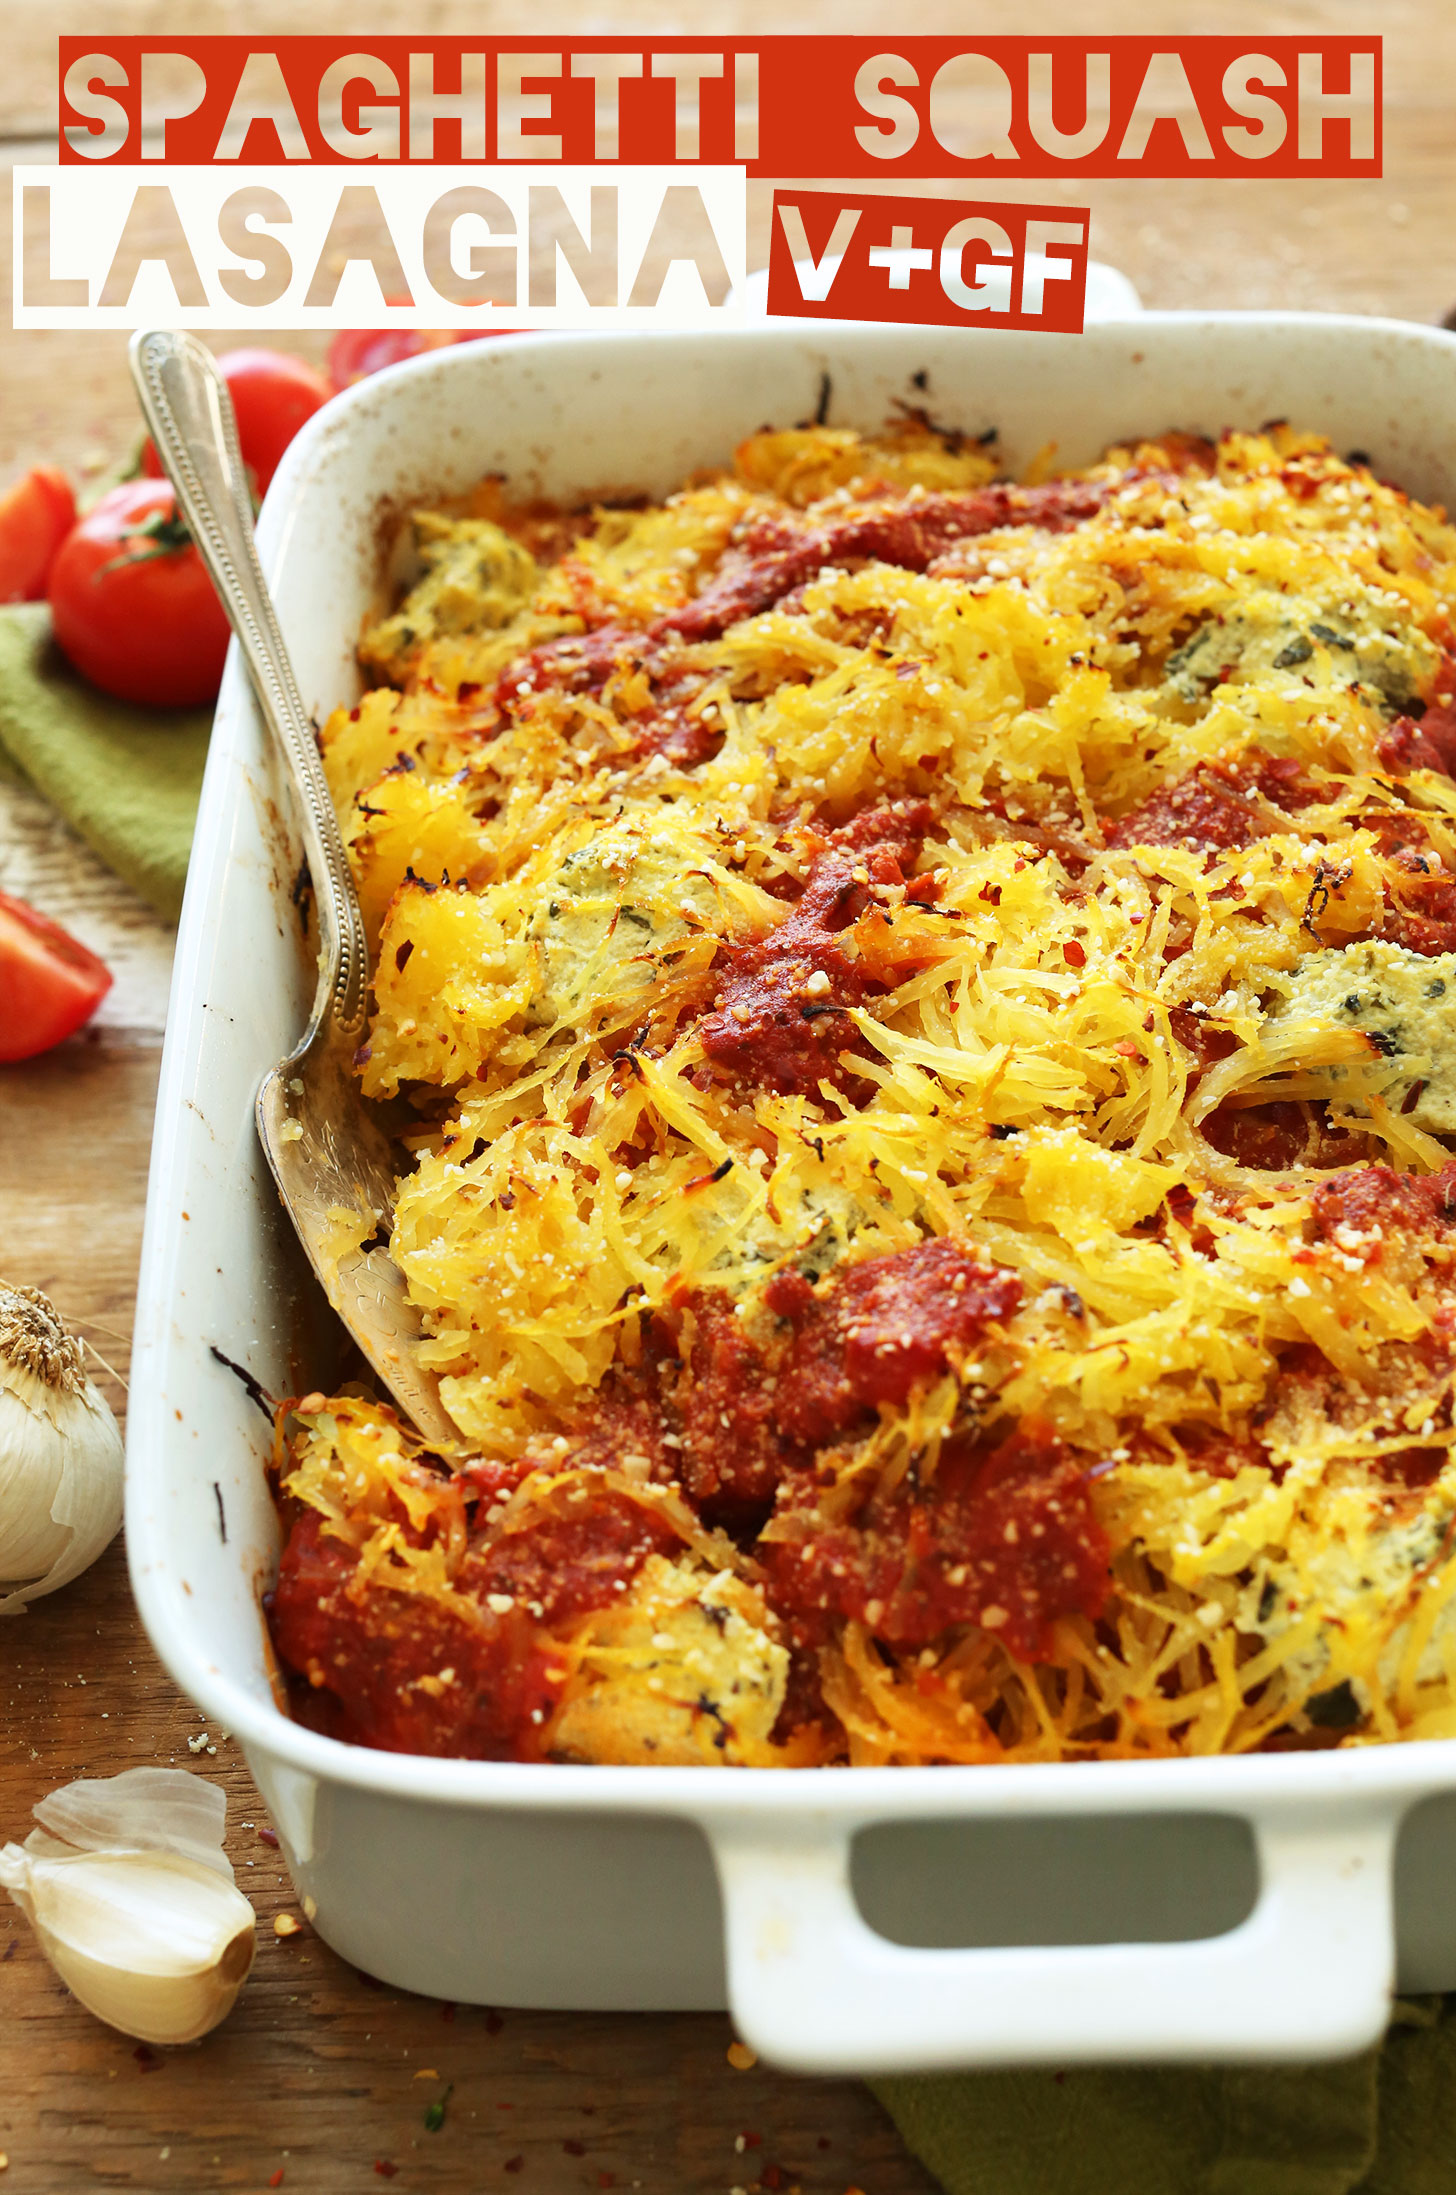 Spaghetti squash lasagna minimalist baker recipes healthy spaghetti squash lasagna bake 10 ingredients plant based so delicious forumfinder Images